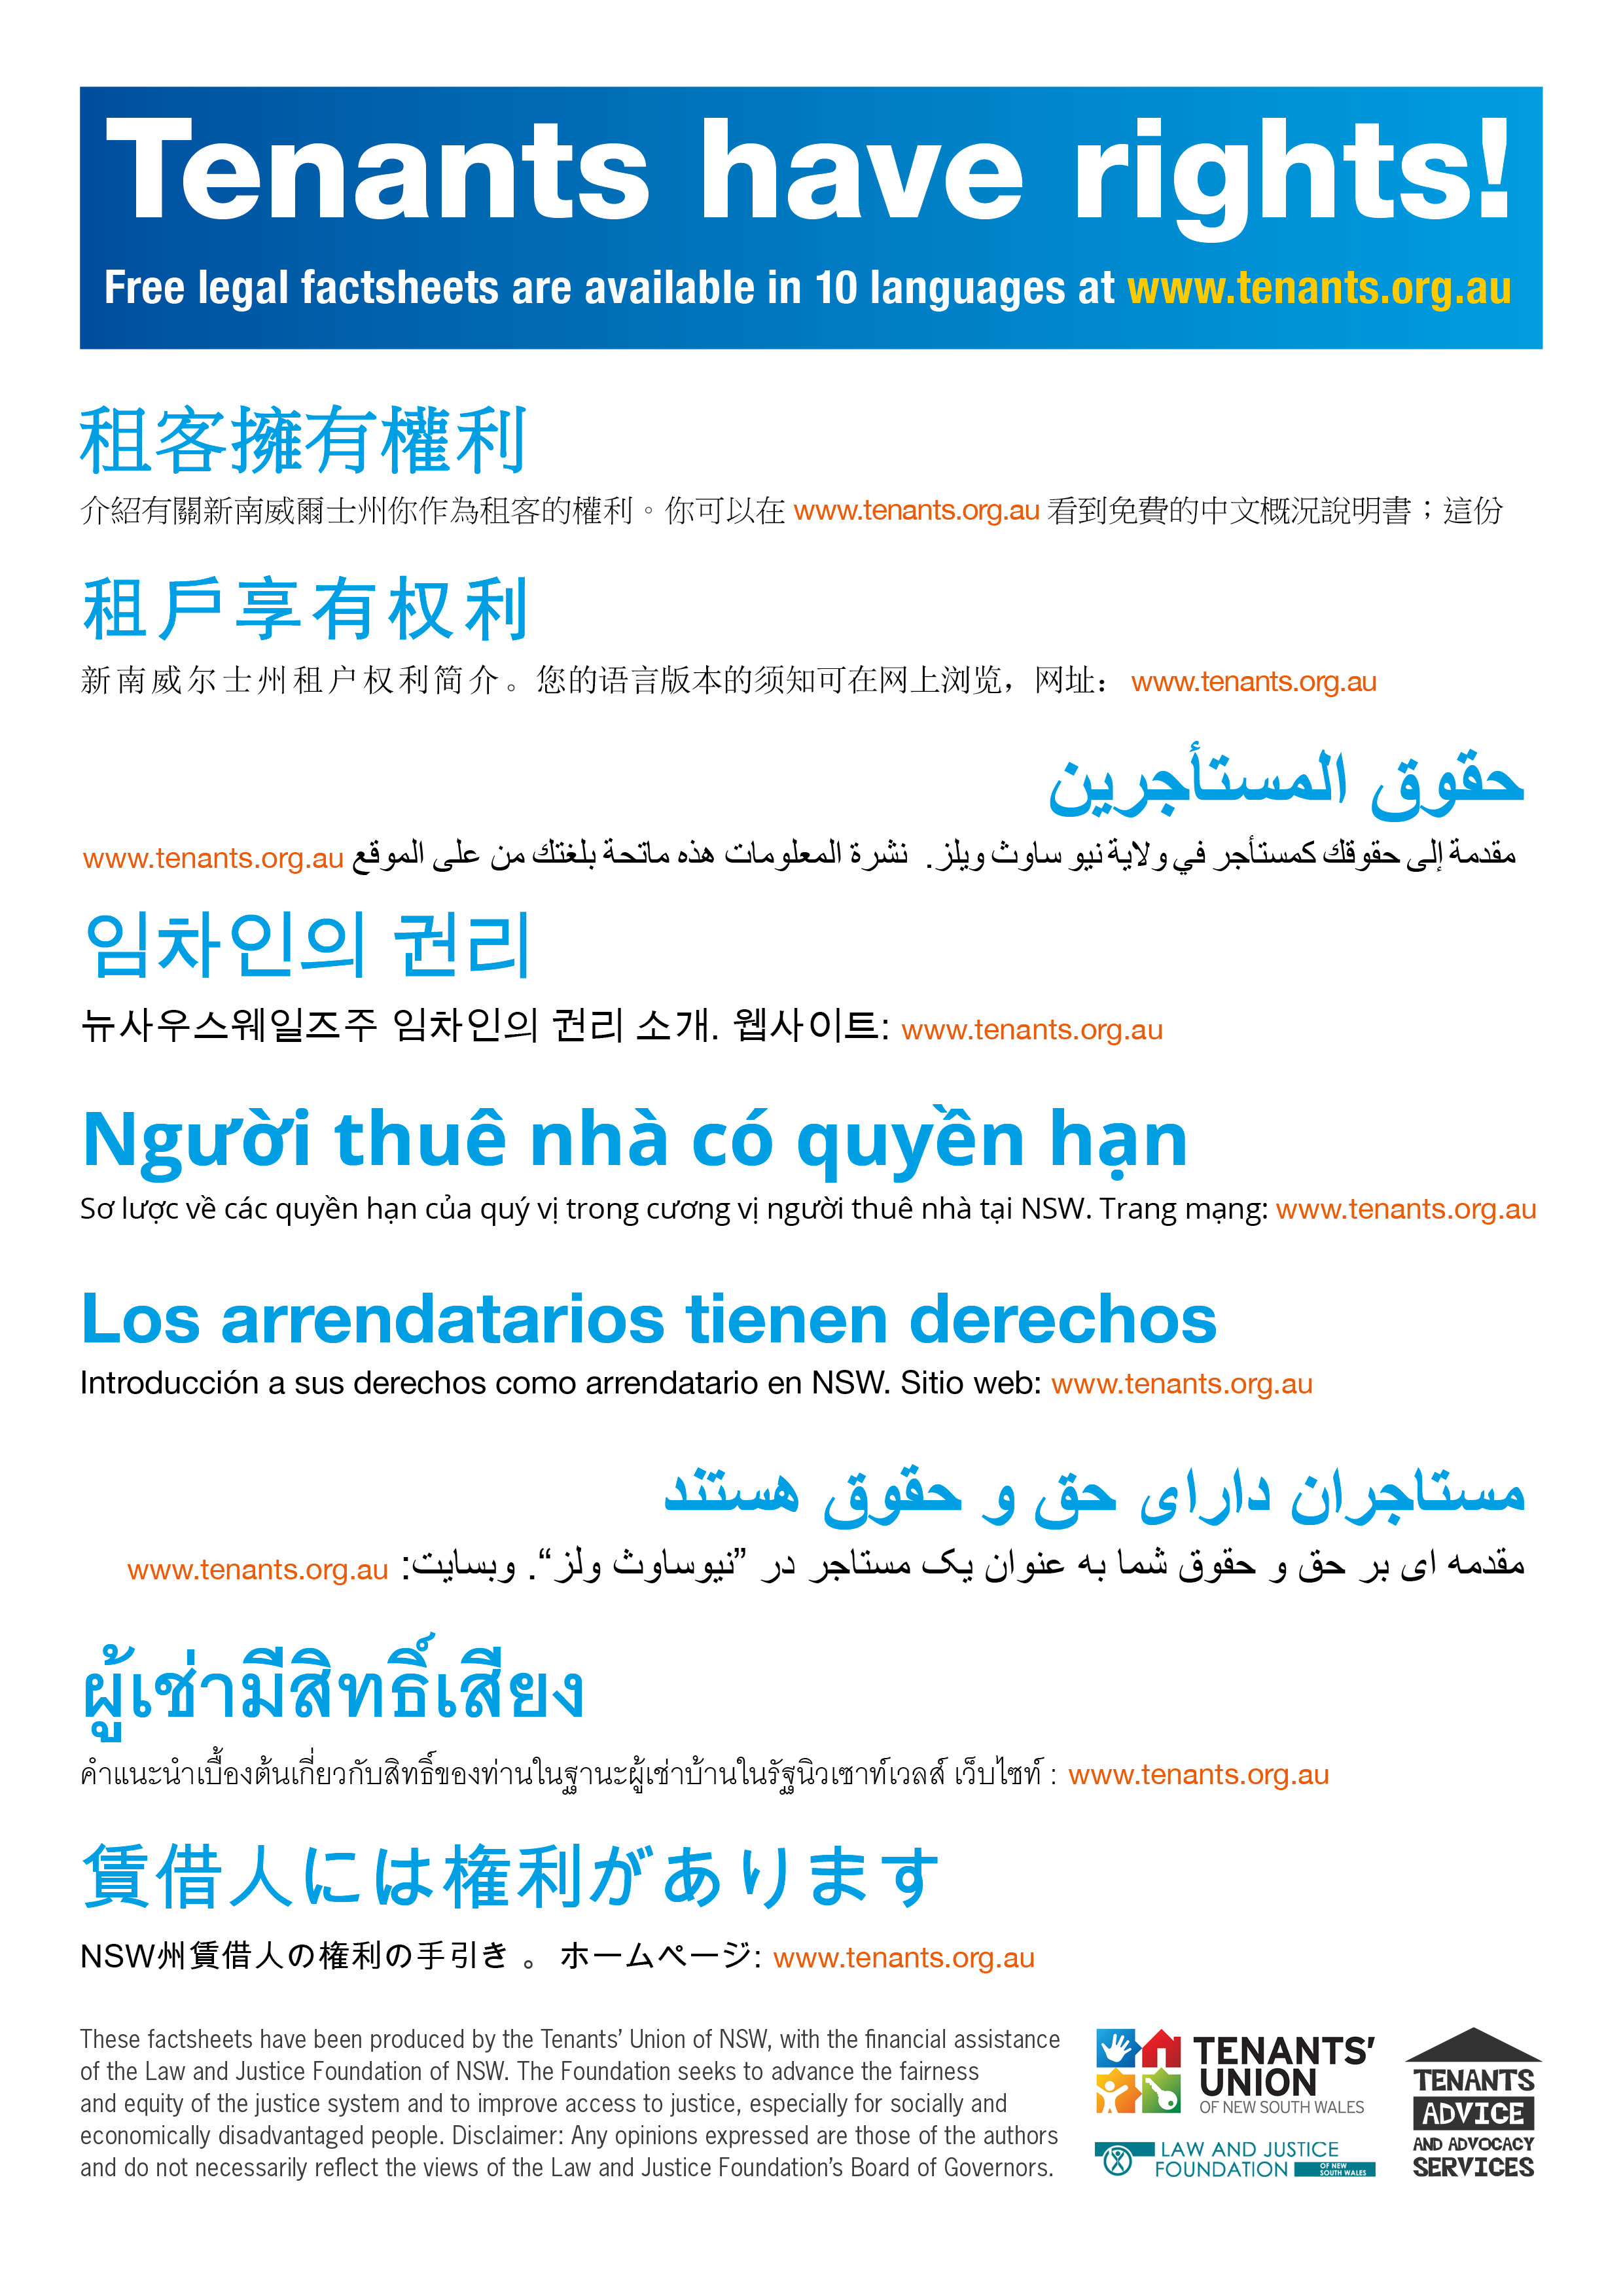 Tenants' have rights! Community languages poster